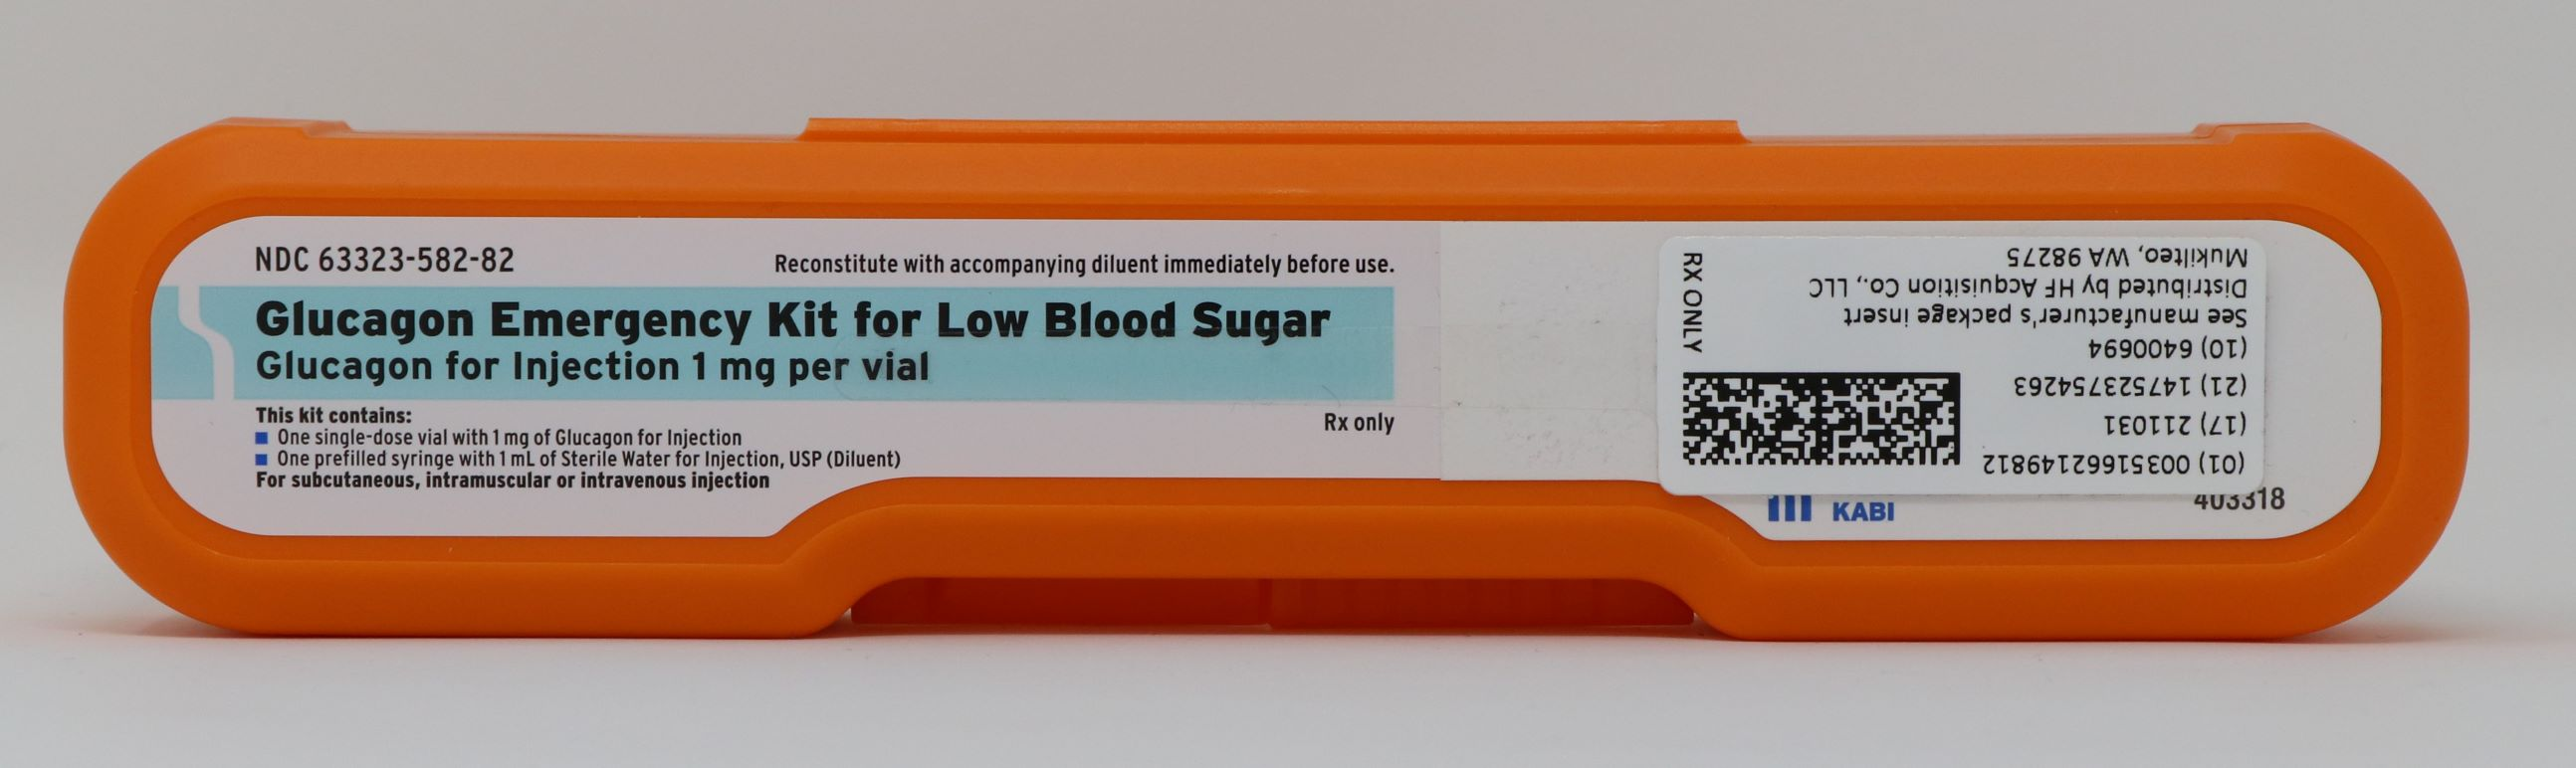 SERIALIZED KIT LABELING